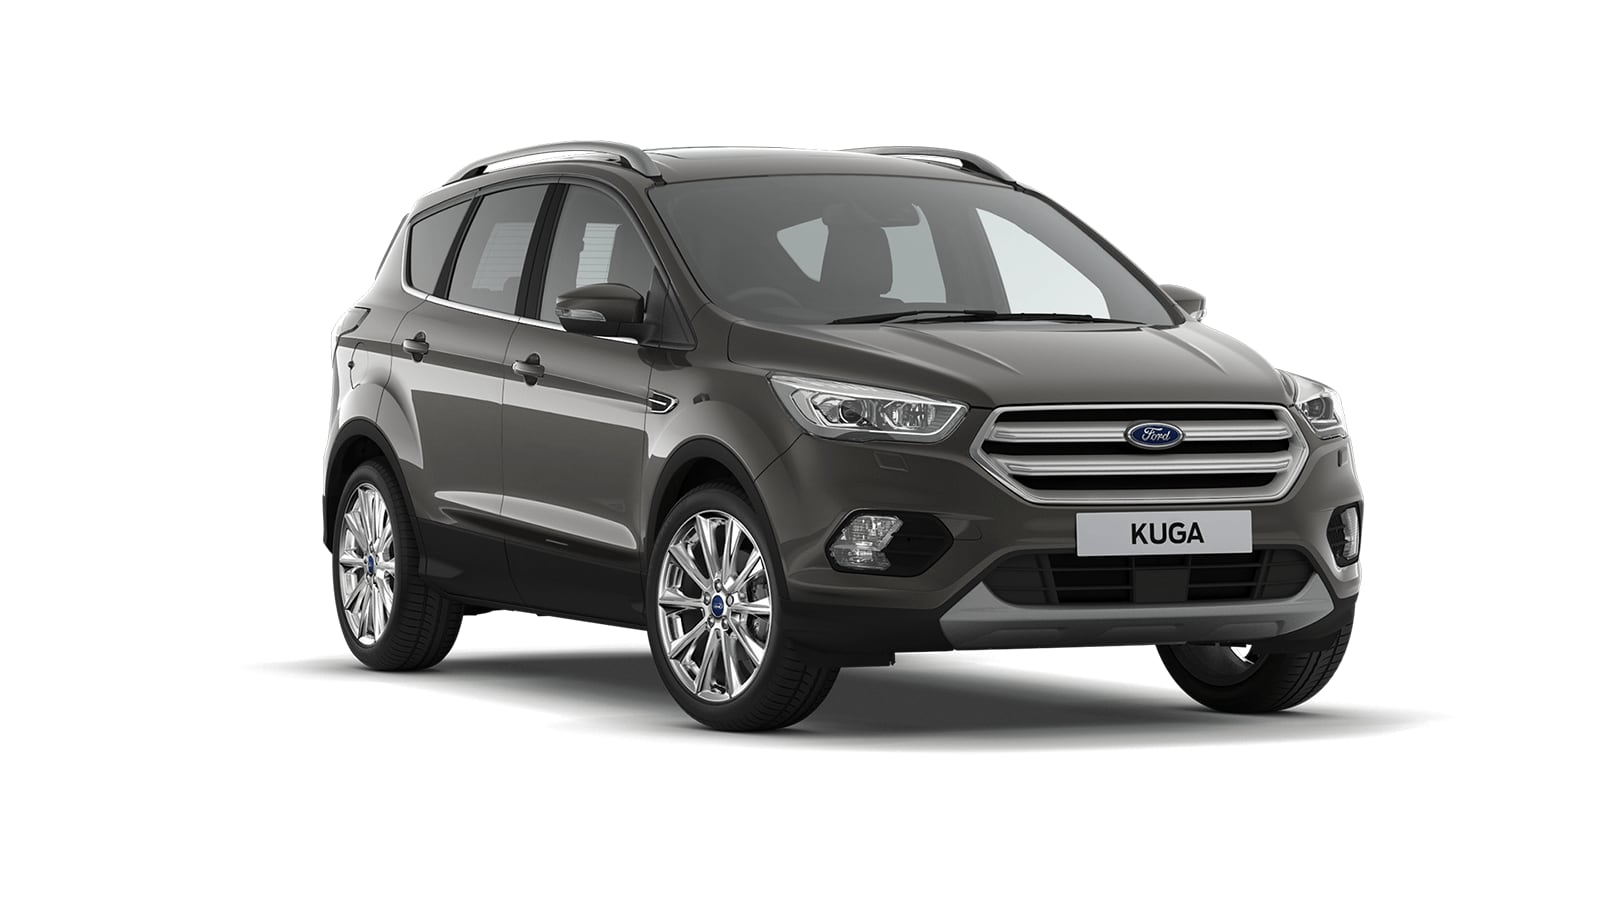 KUGA Titanium X Edition 5 Door in Magnetic